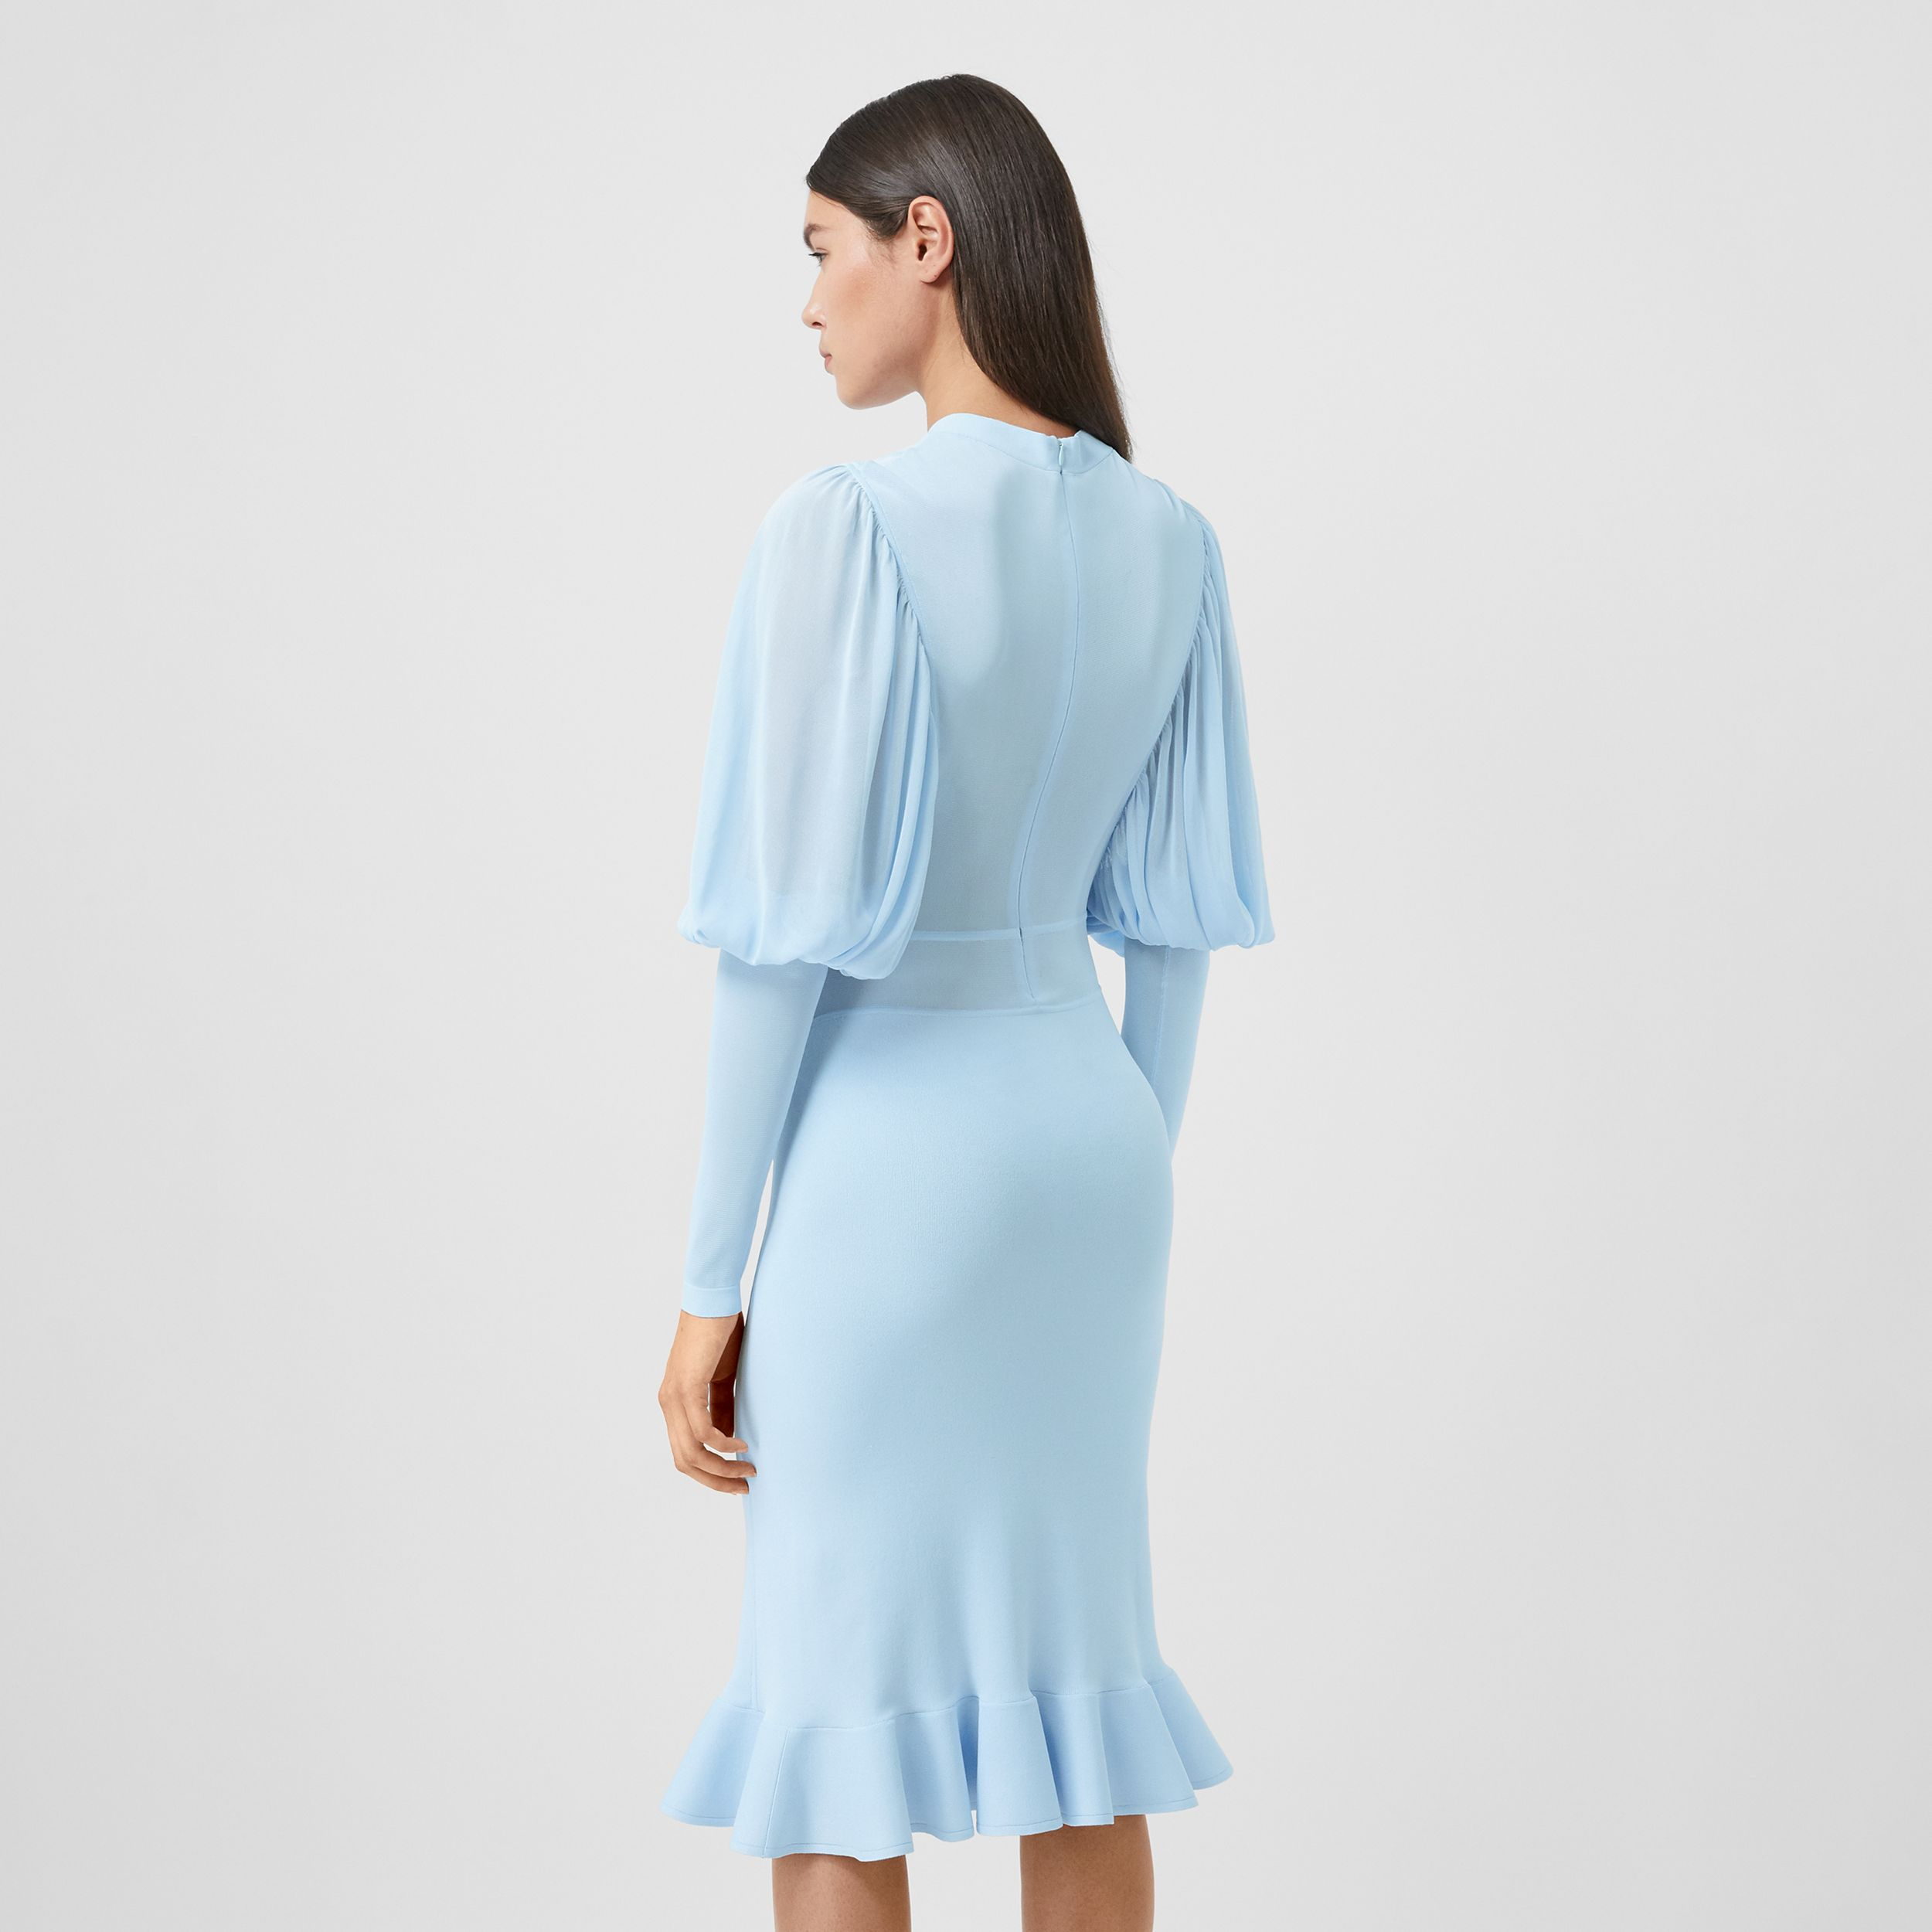 Puff-sleeve Jersey Dress in Pale Blue - Women | Burberry - 3